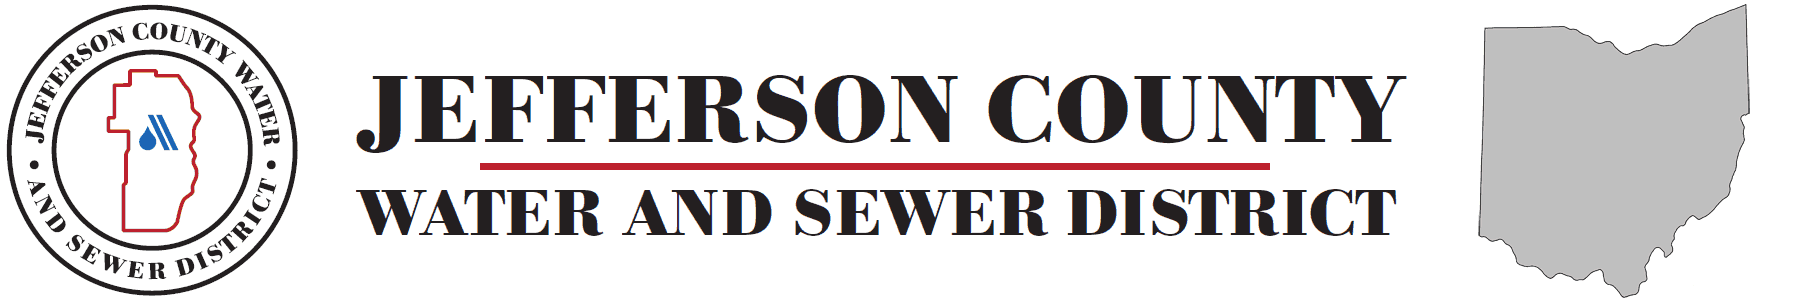 Jefferson County Water and Sewer